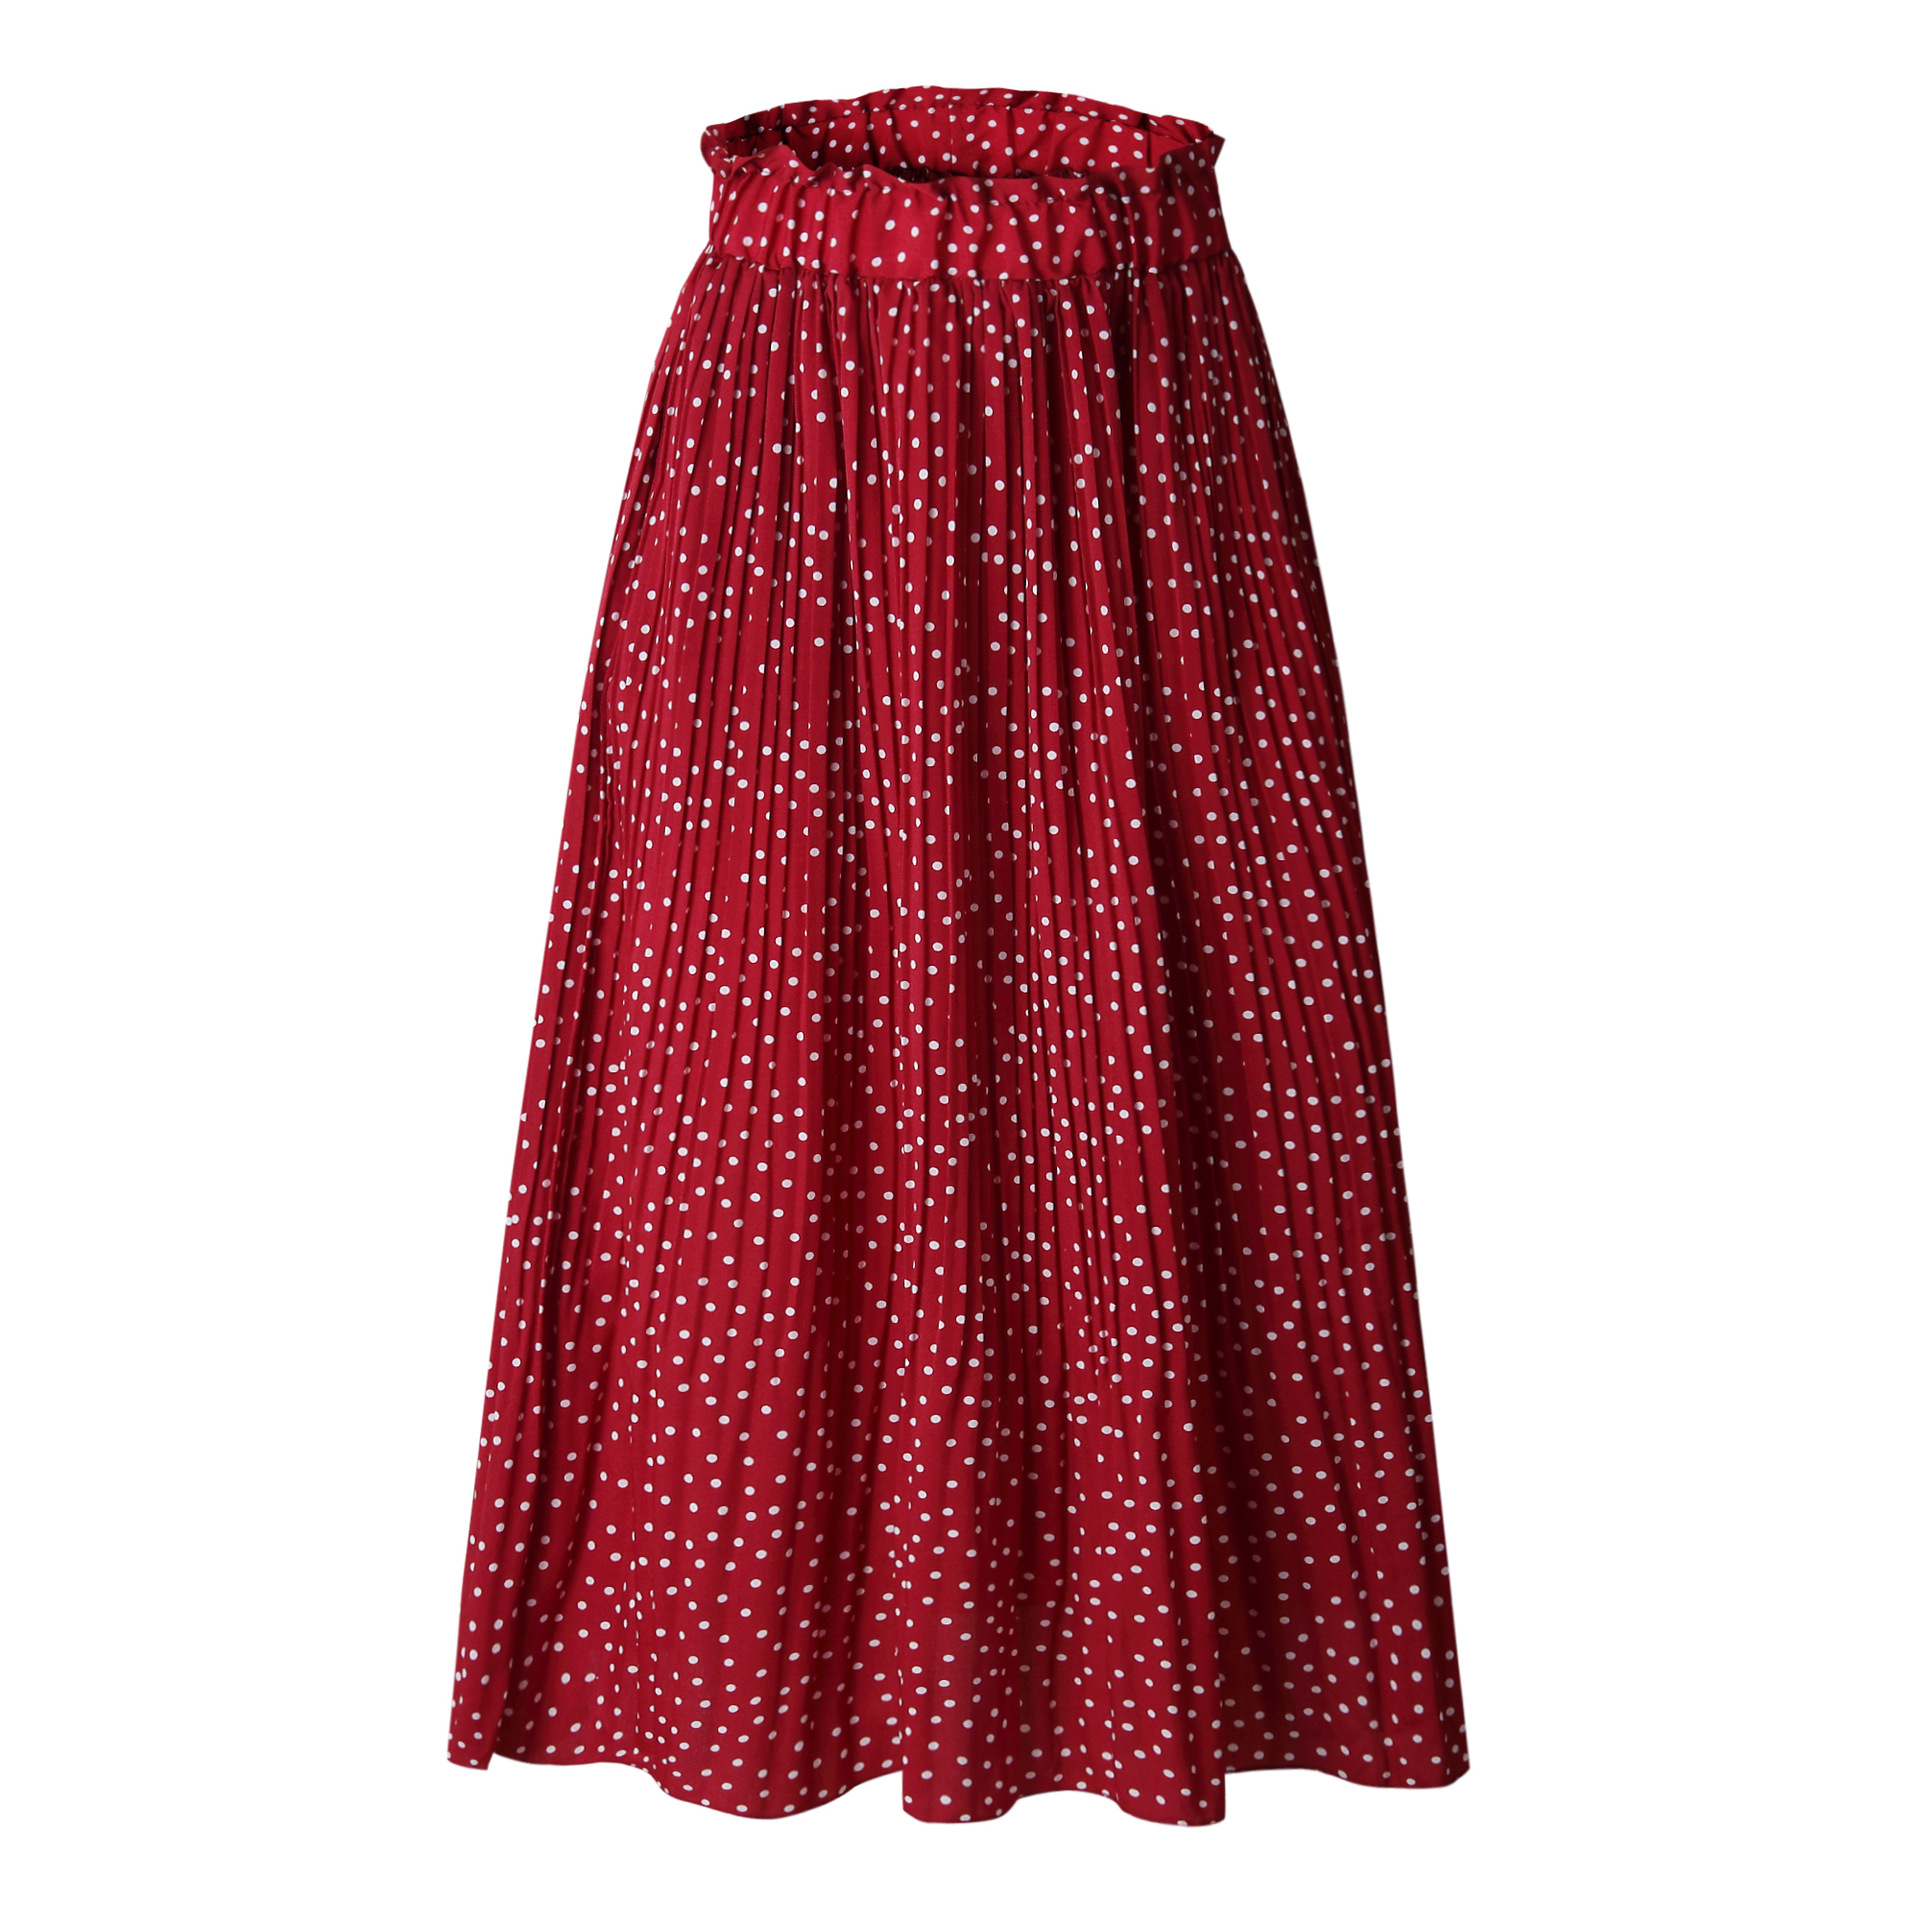 Hbb65132d02f2450ca2f23b7430626d9bH - Summer Casual Chiffon Print Pockets High Waist Pleated Maxi Skirt Womens Long Skirts For Women